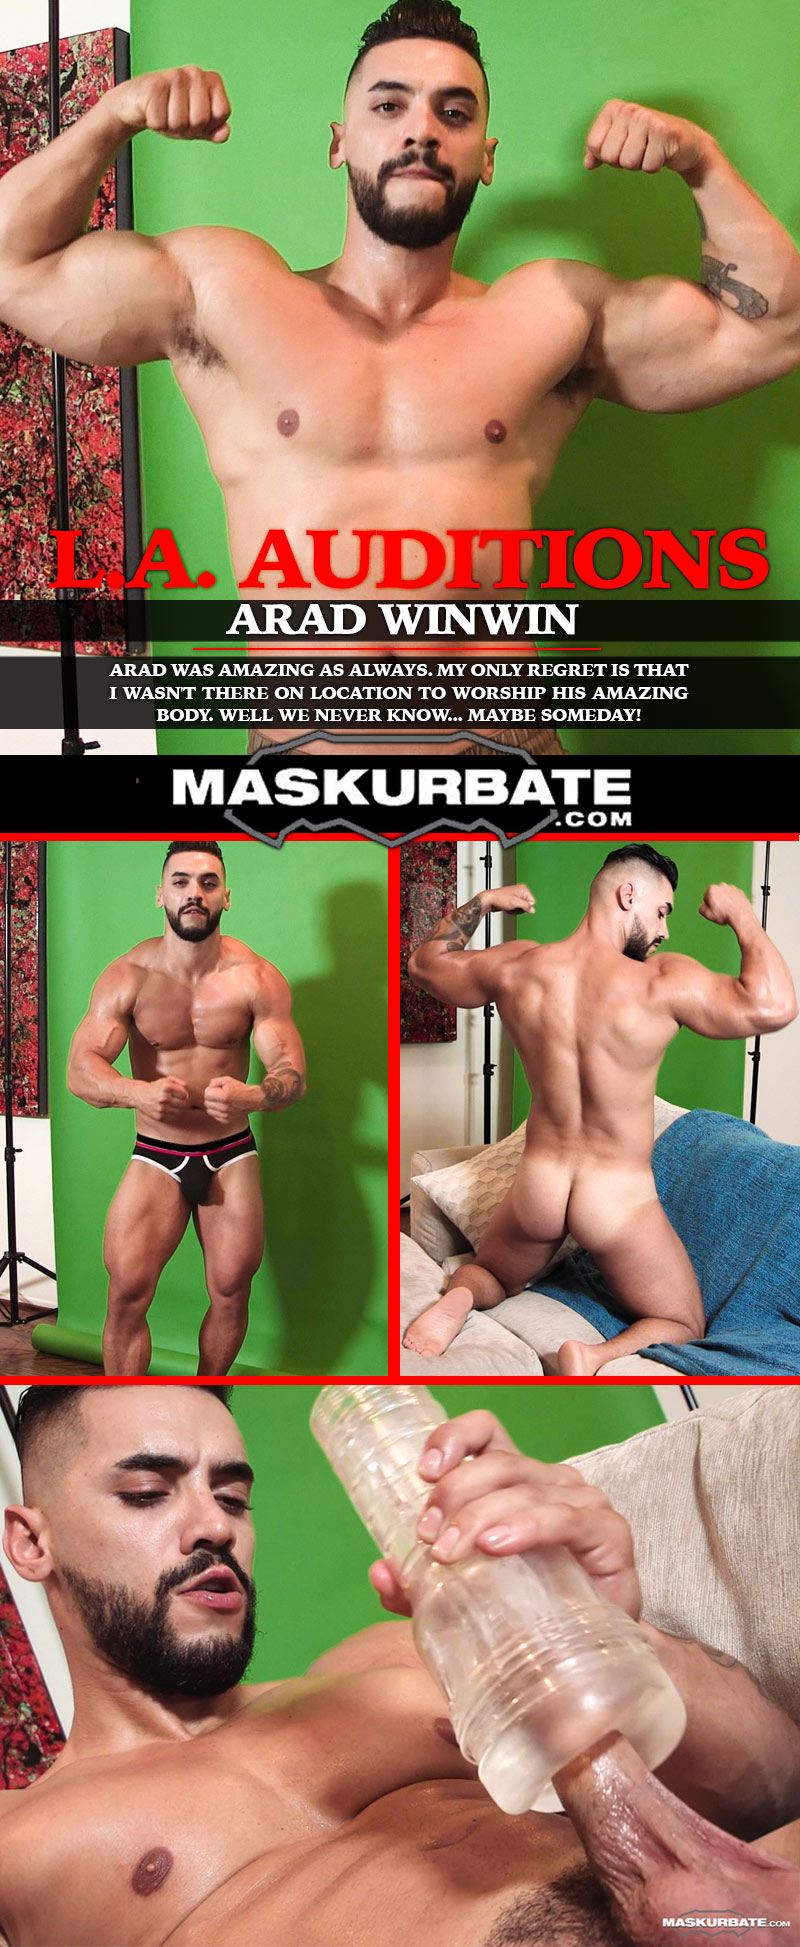 L.A. Auditions (feat Arad Winwin) at Maskurbate